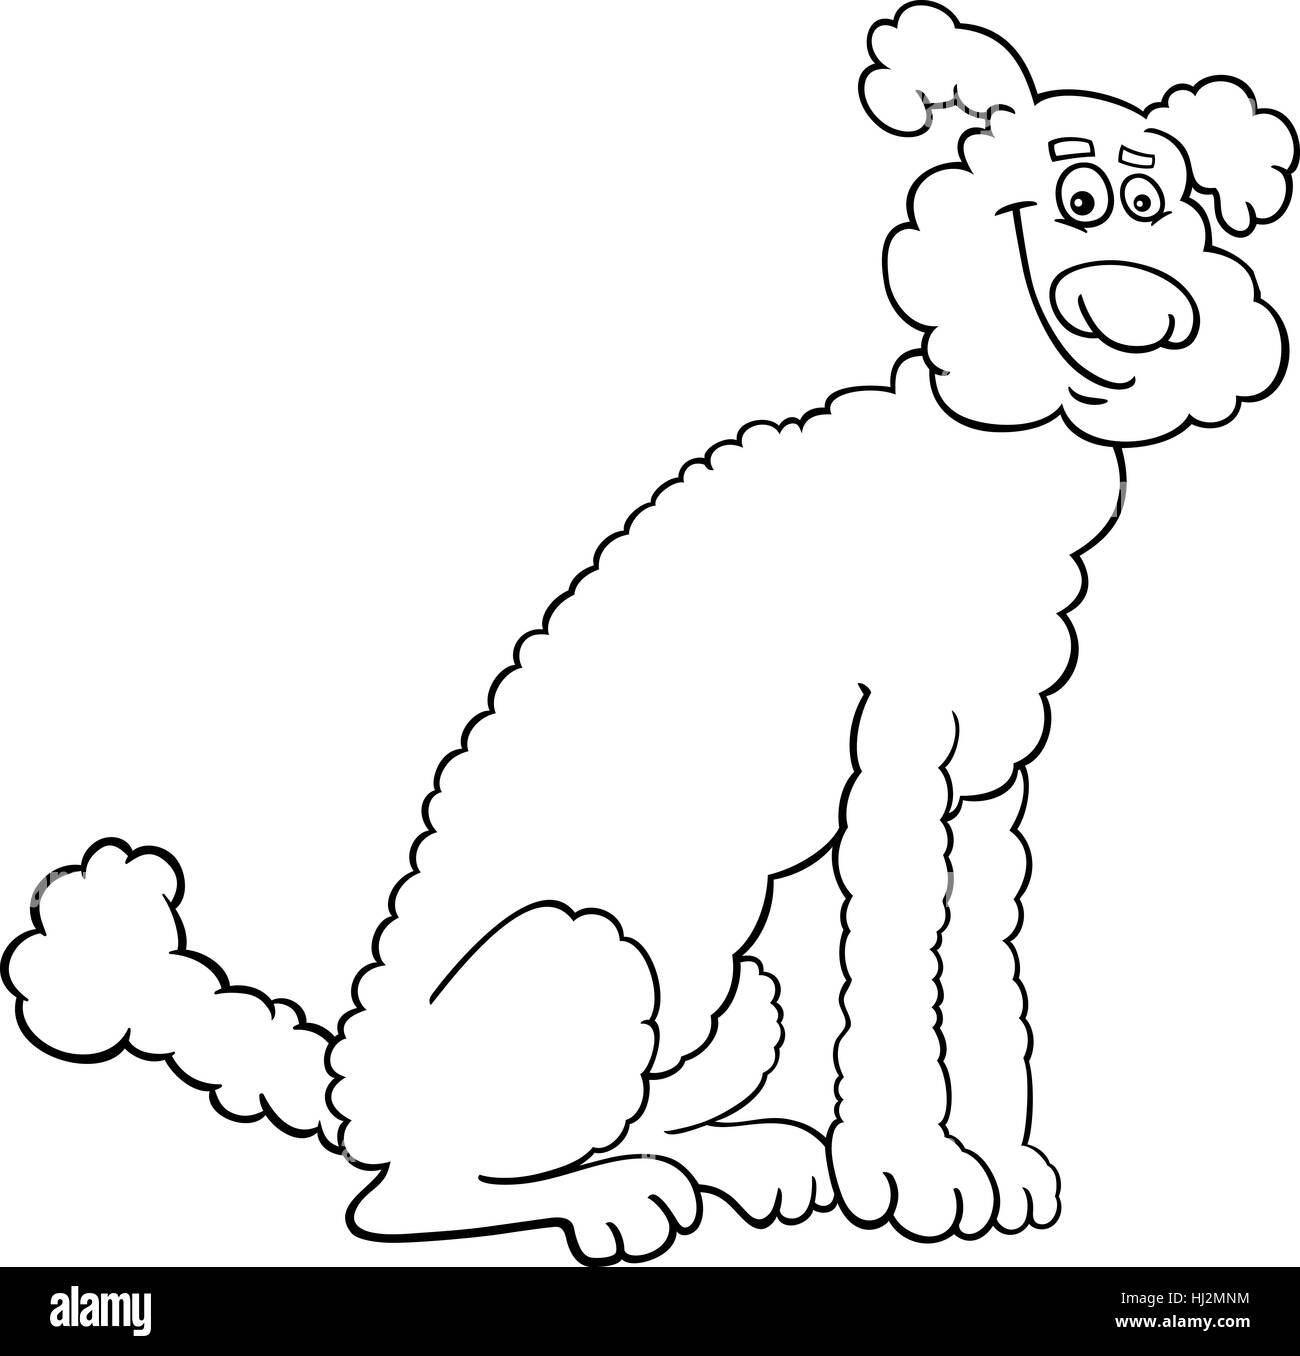 Black And White Cartoon Illustration Of Cute Poodle Dog For Coloring Book Or Page